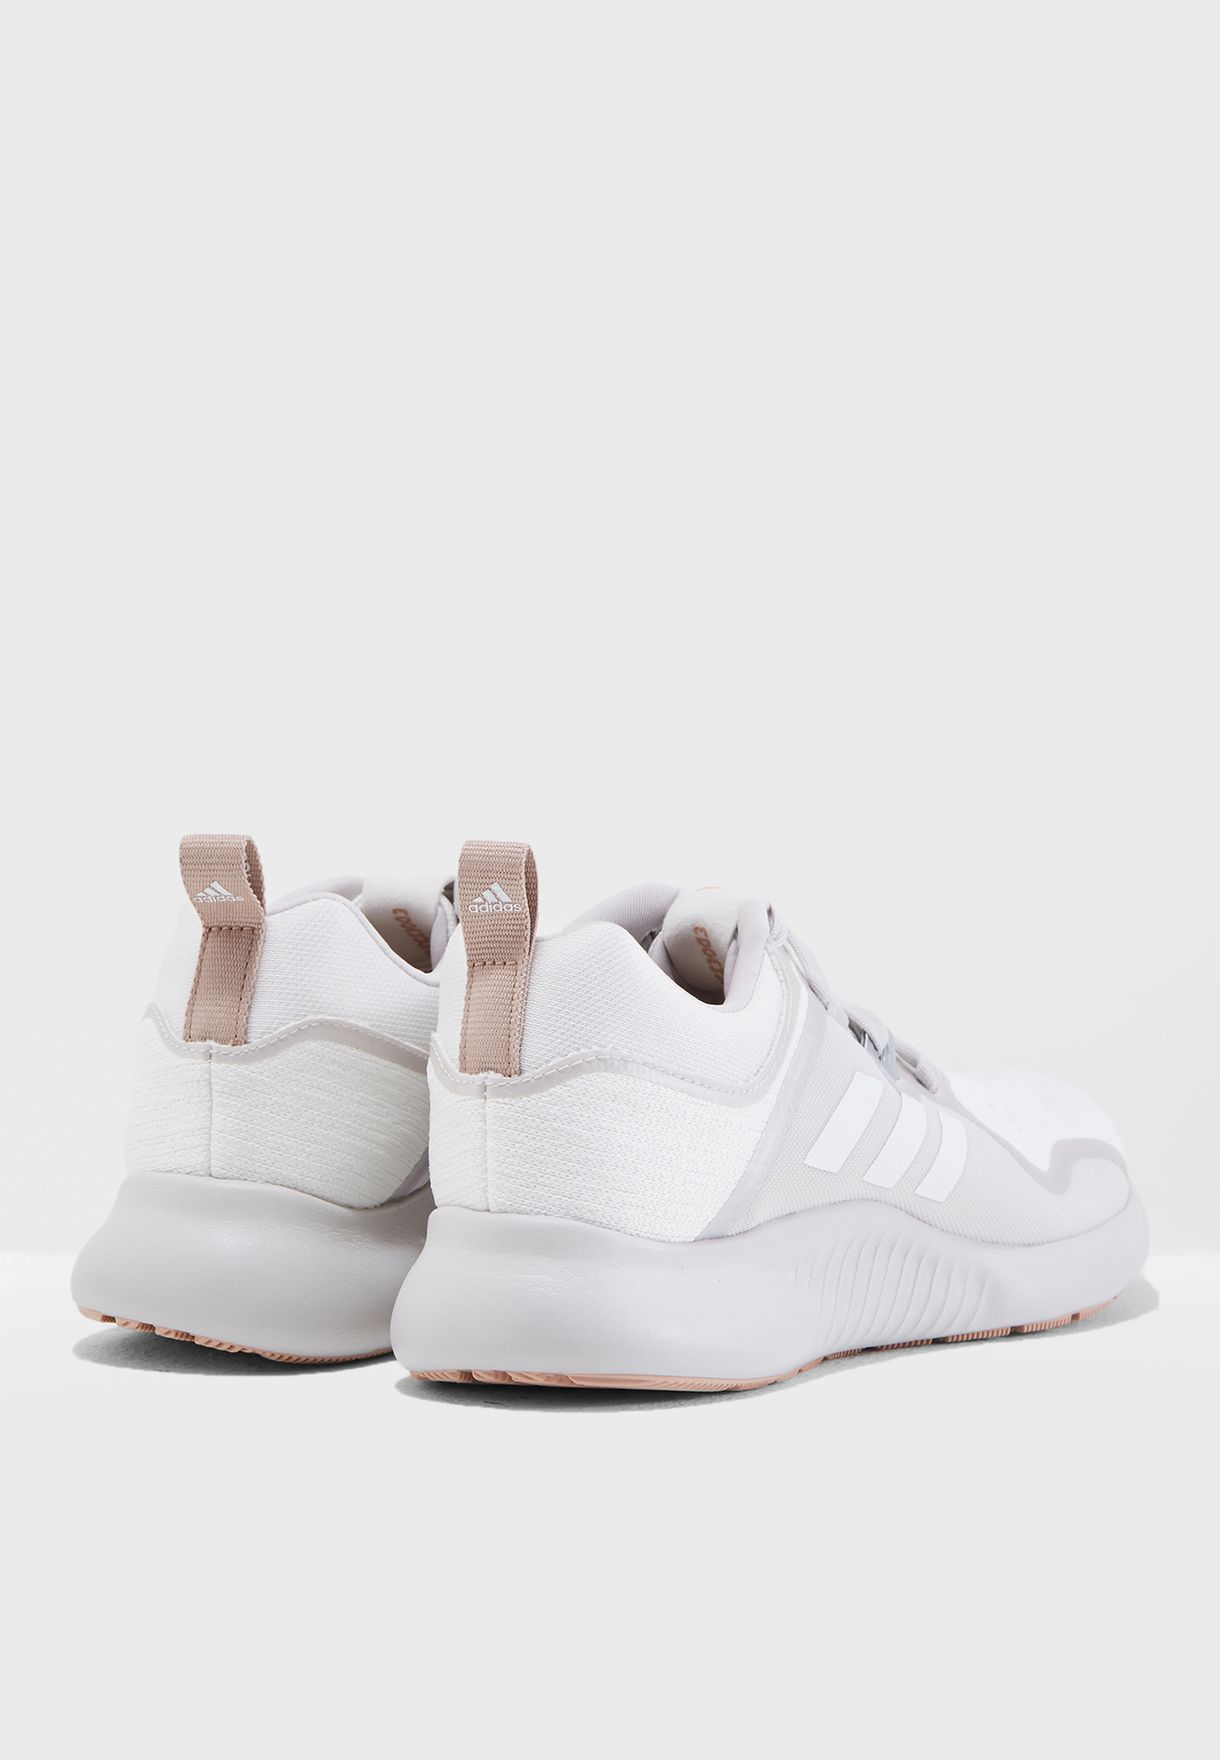 on sale 8bc87 cc877 Shop adidas white Edgebounce AC8116 for Women in Saudi - AD4